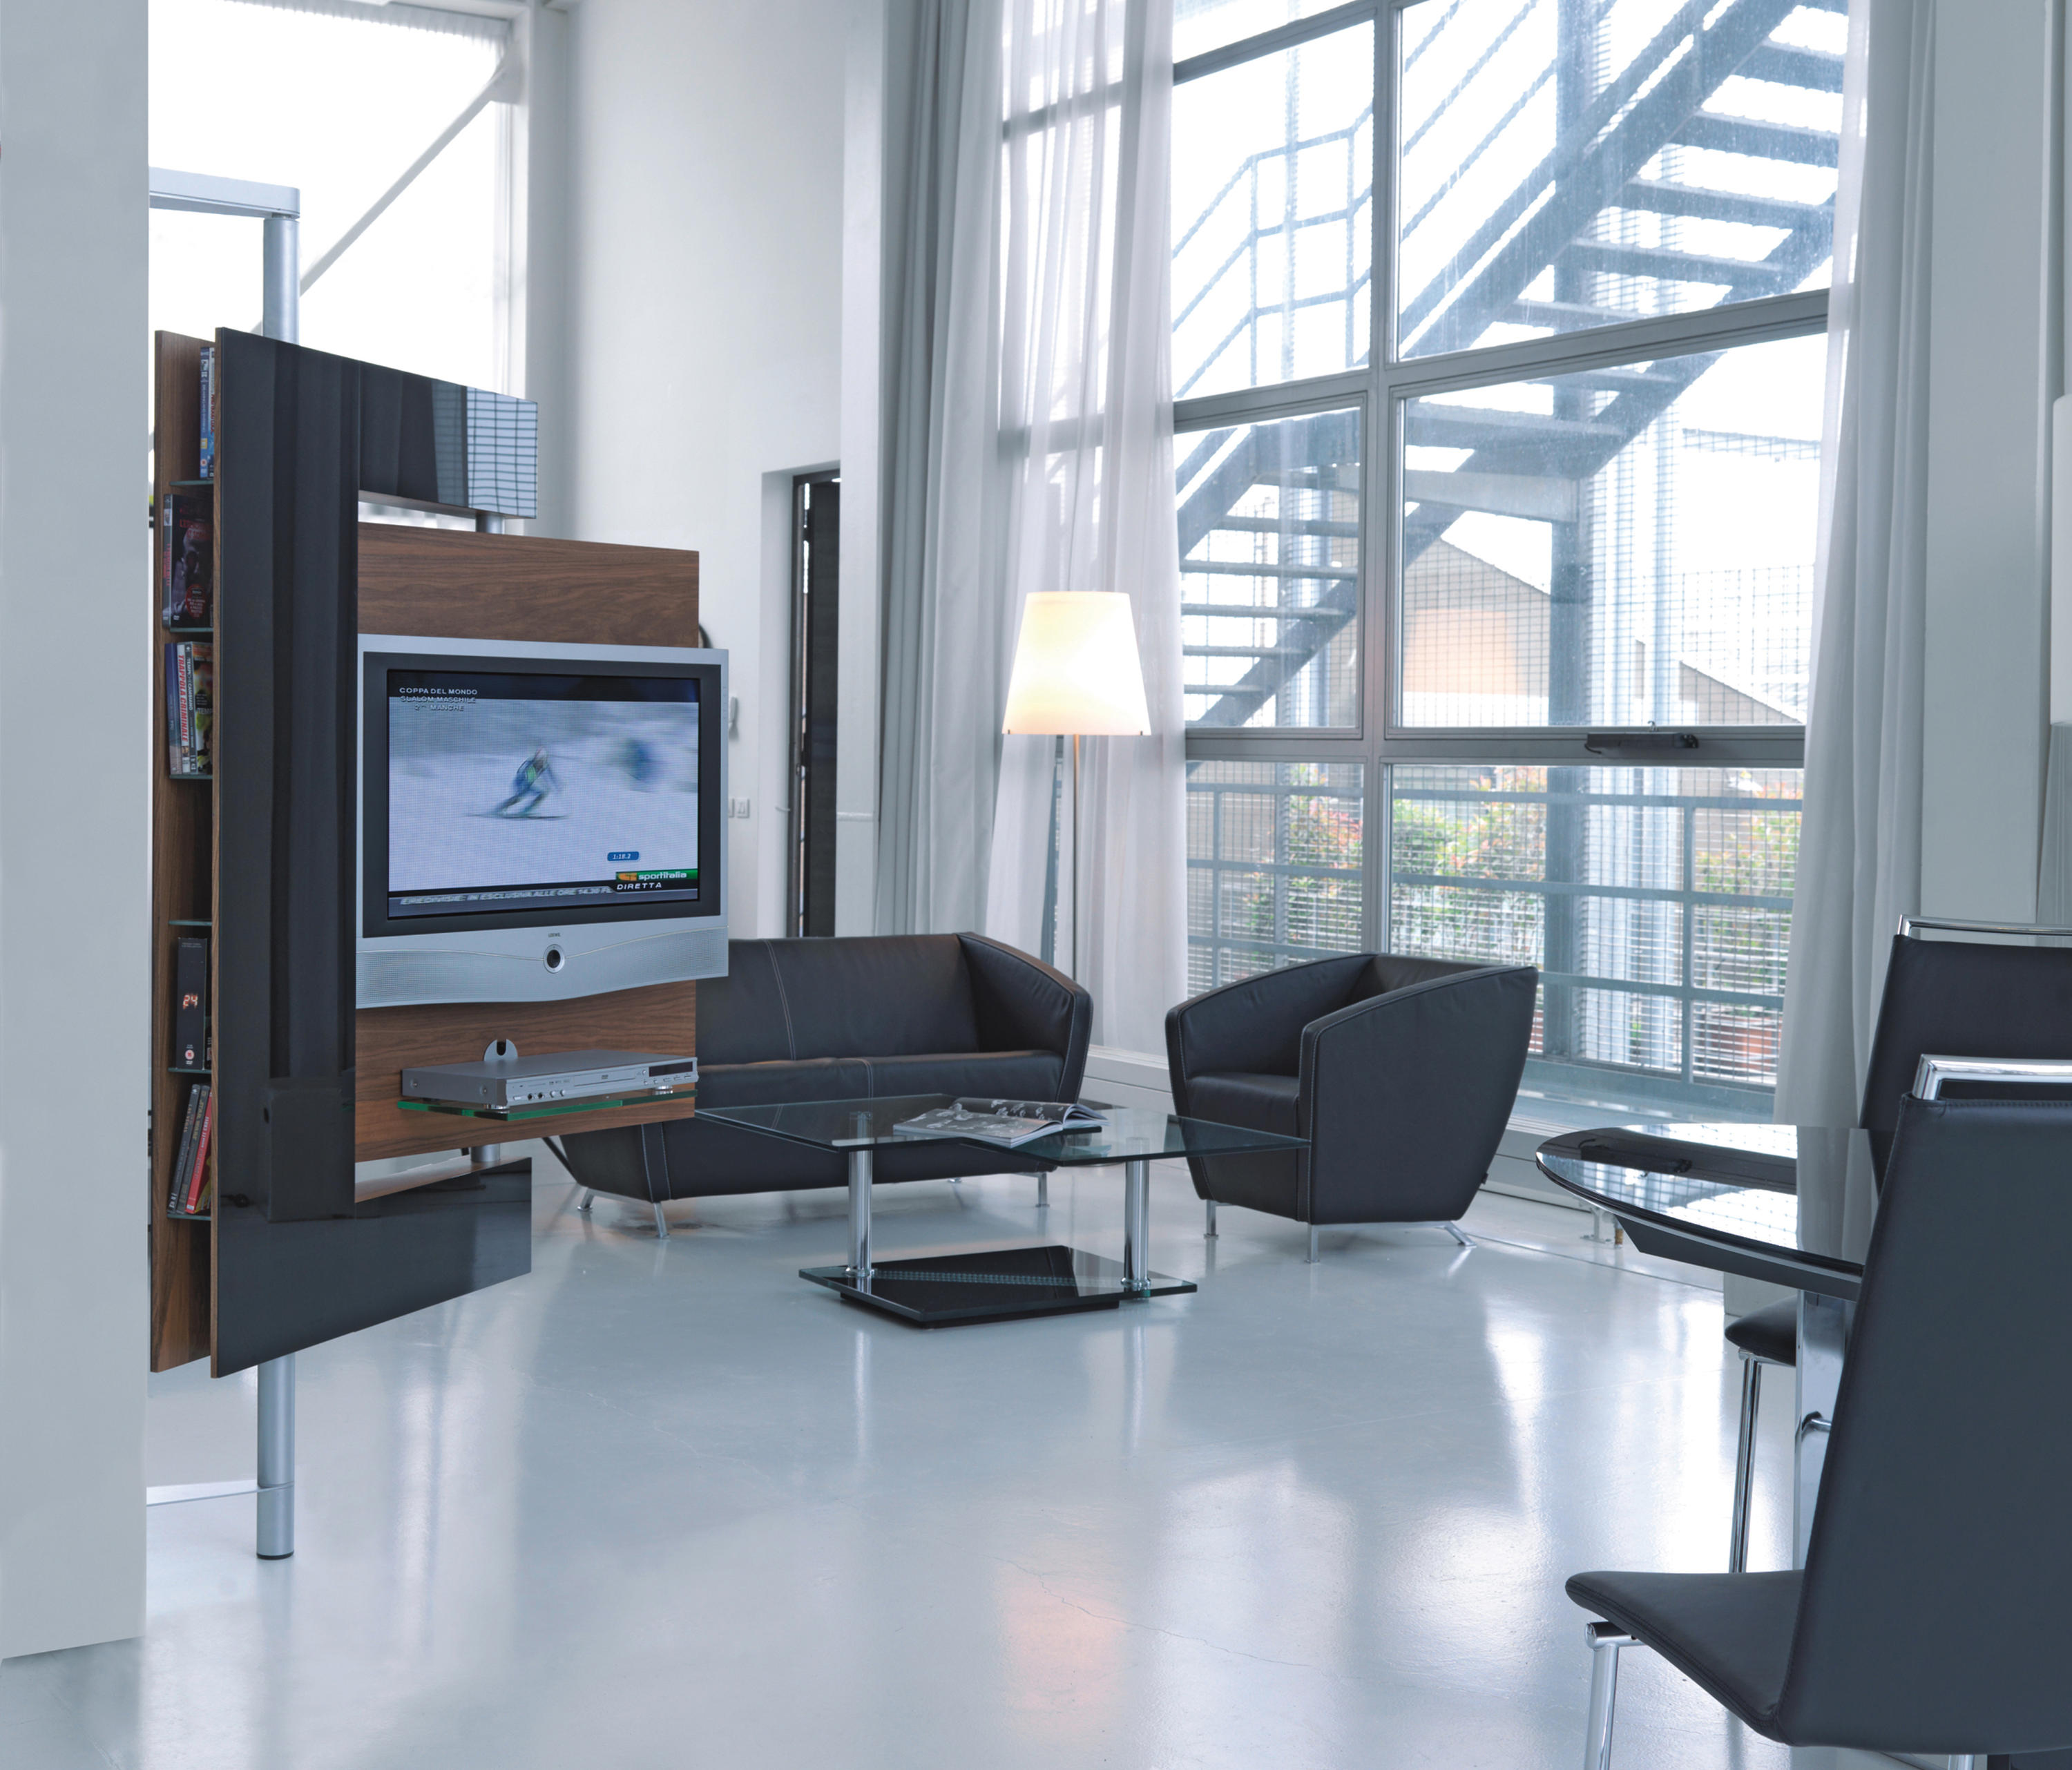 media home rack salt tech theater video distribution smart cinema parade automation pin tiling lake of homes